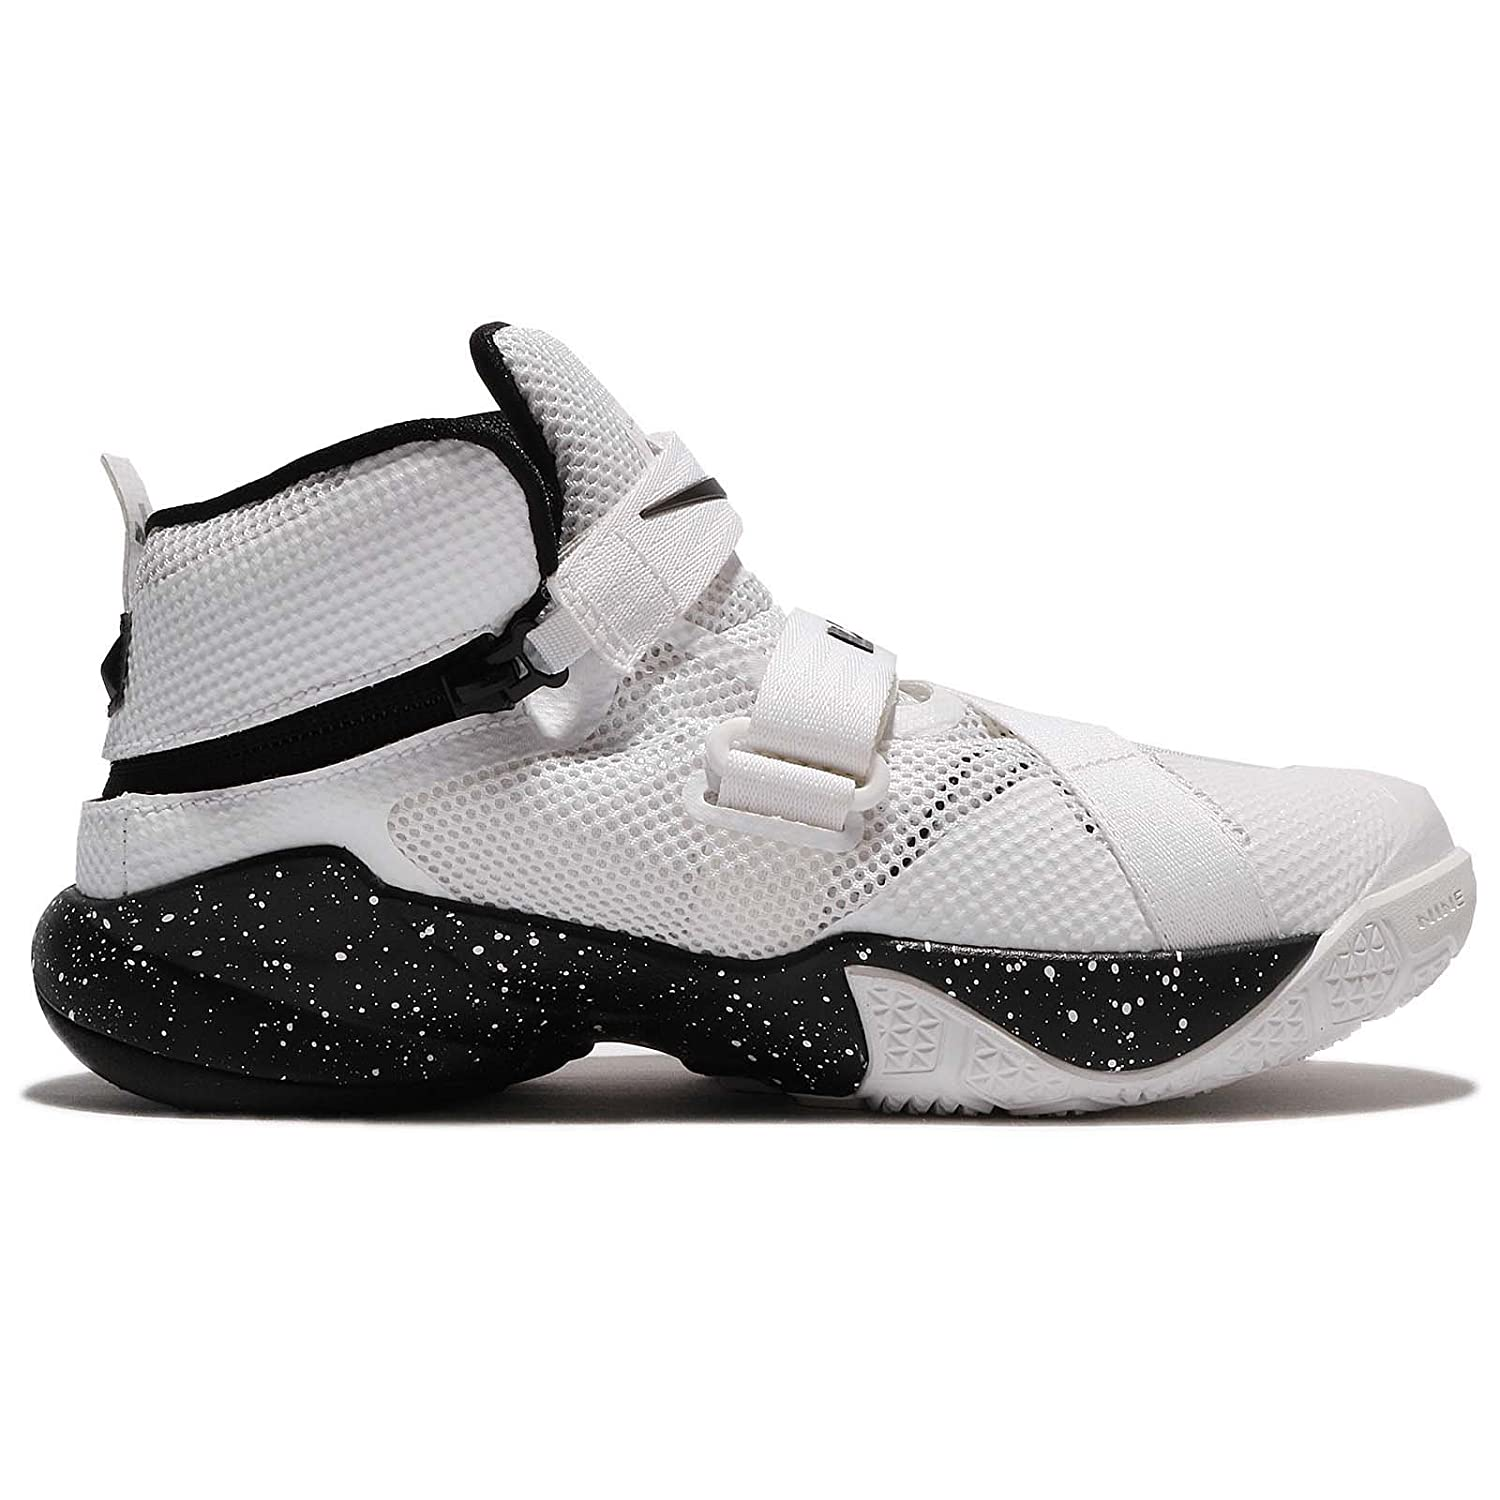 Amazon.com | NIKE Kid's Lebron Soldier IX Flyease GS HK, White/White -  Black - Metallic Silver, Youth Size 4.5 | Basketball